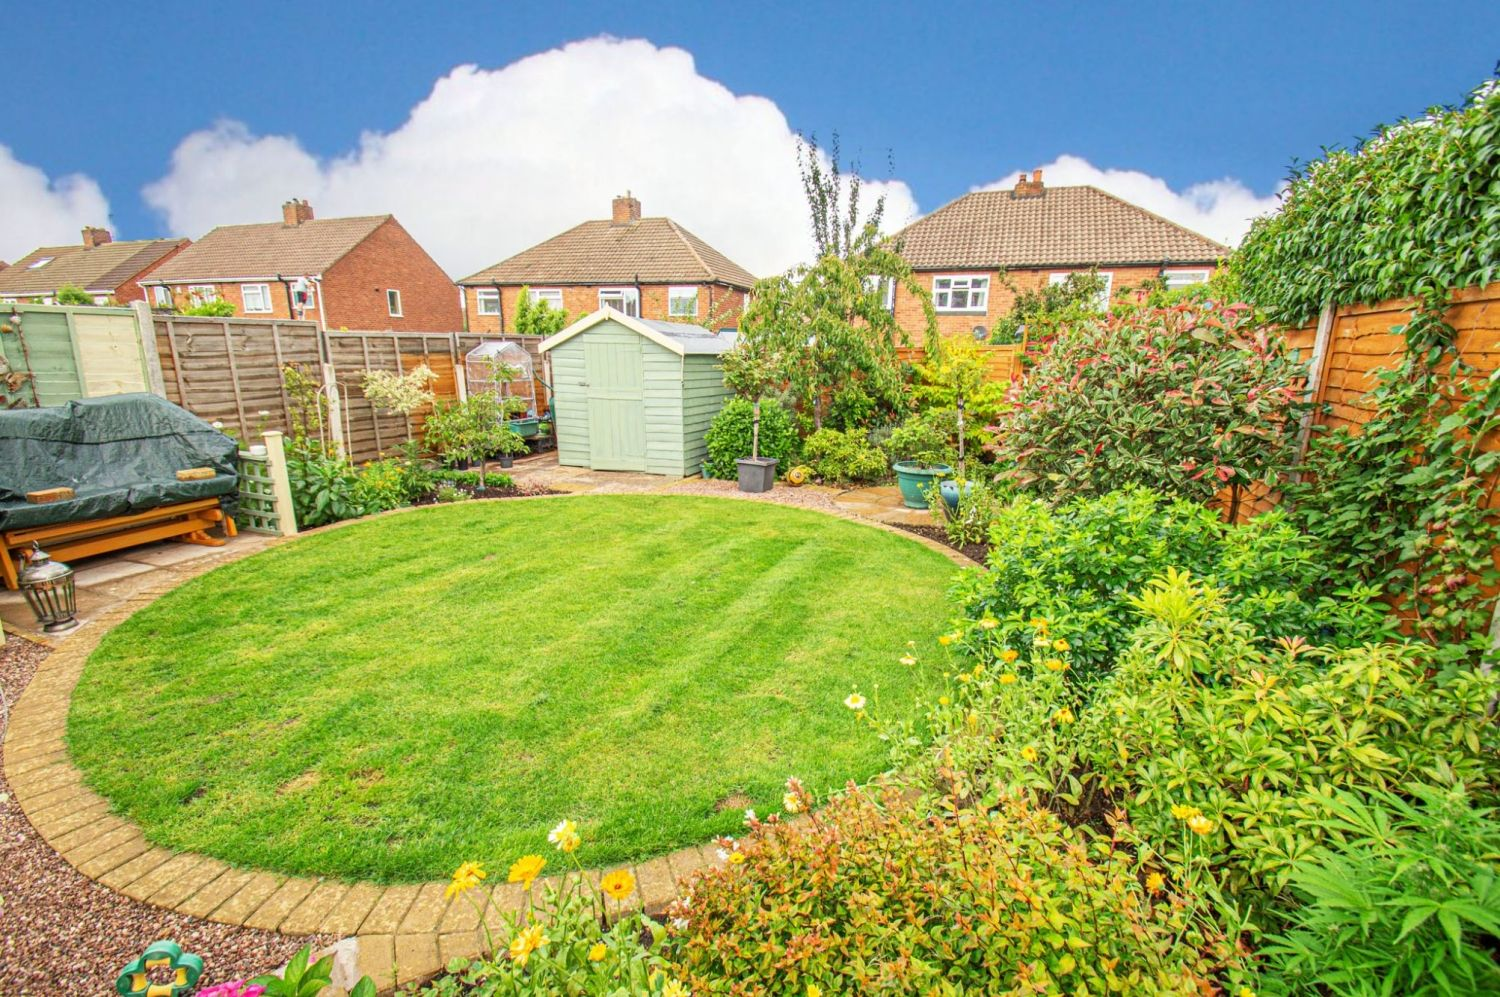 4 bed semi-detached for sale in Wheatcroft Close, Halesowen  - Property Image 19